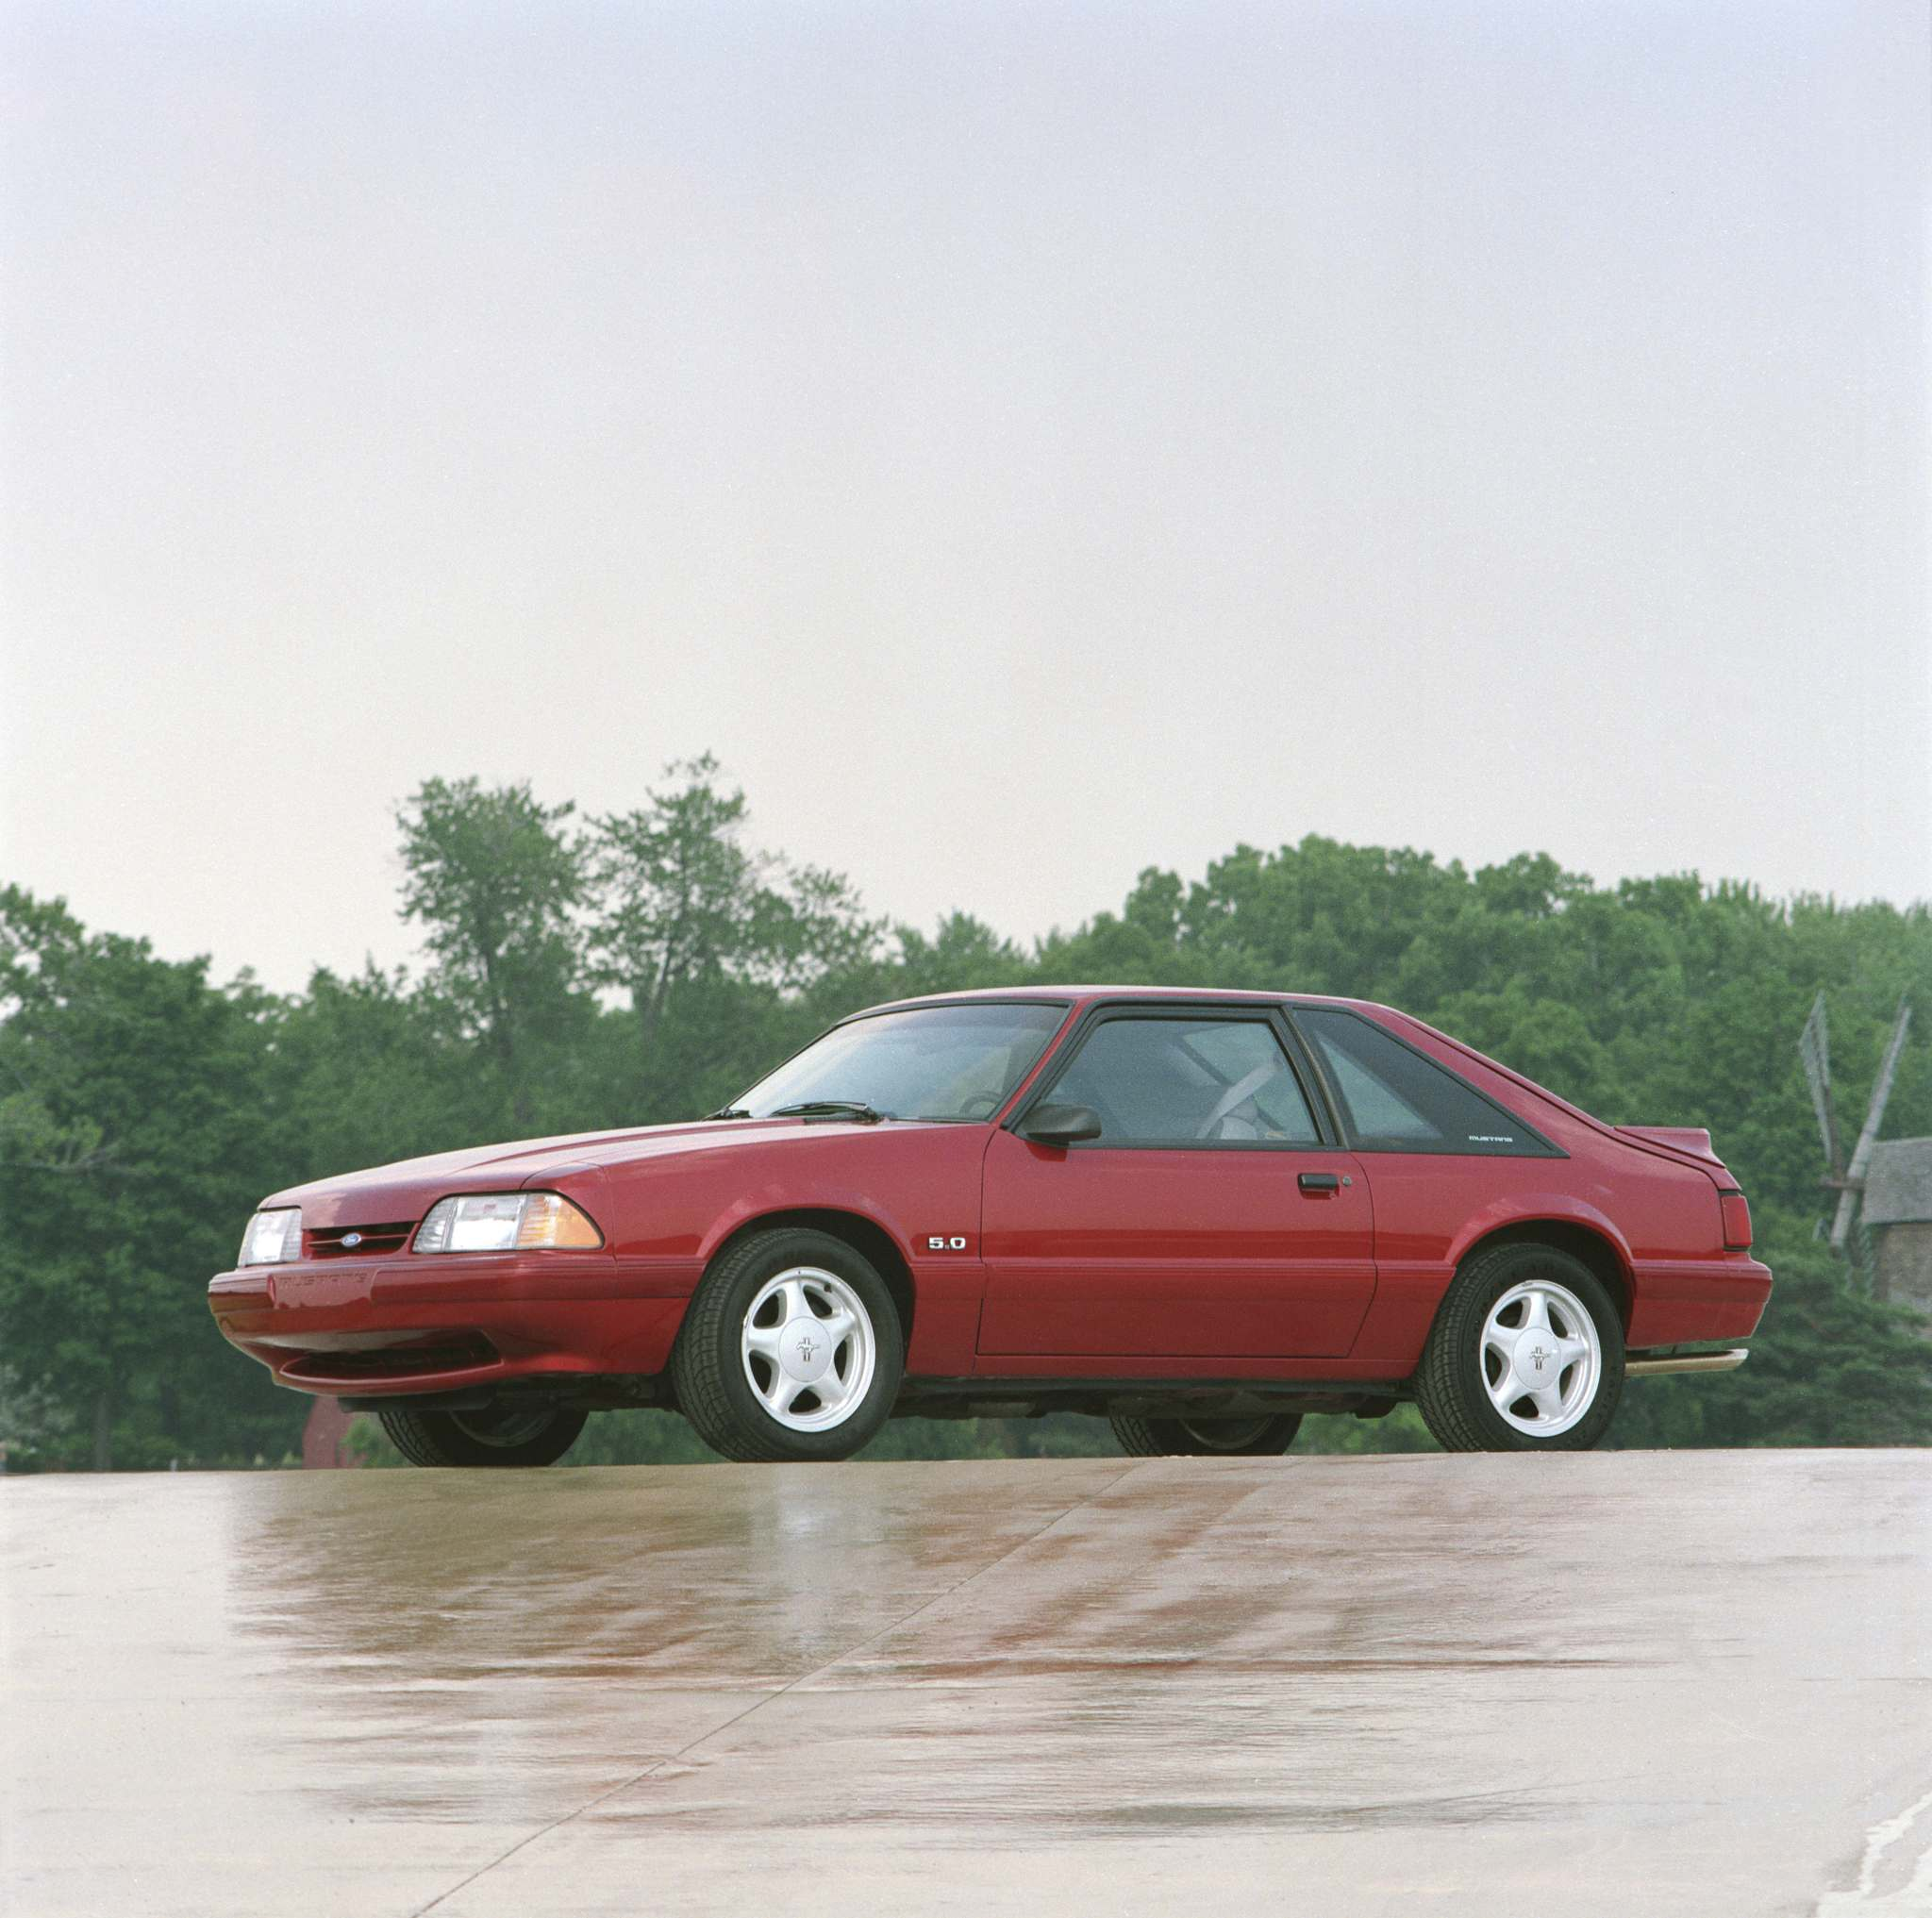 1992 Mustang LX 5.0. The stealthy Mustang Fox Body develops a cult following.  (Ford)